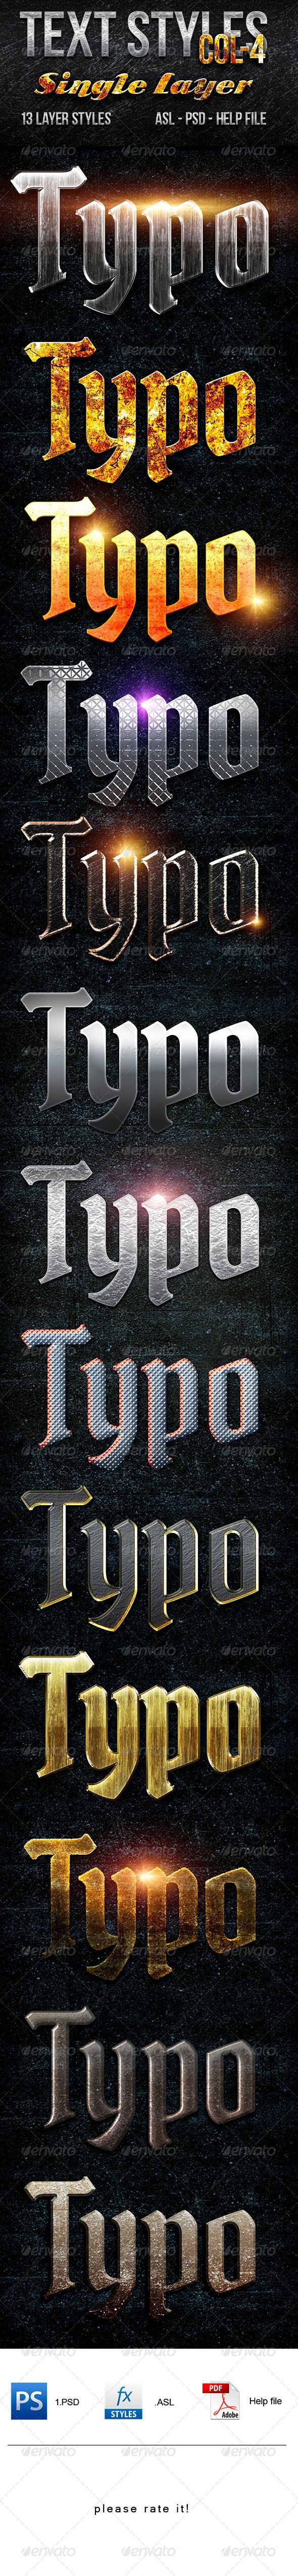 Text Layer Styles -Col 4